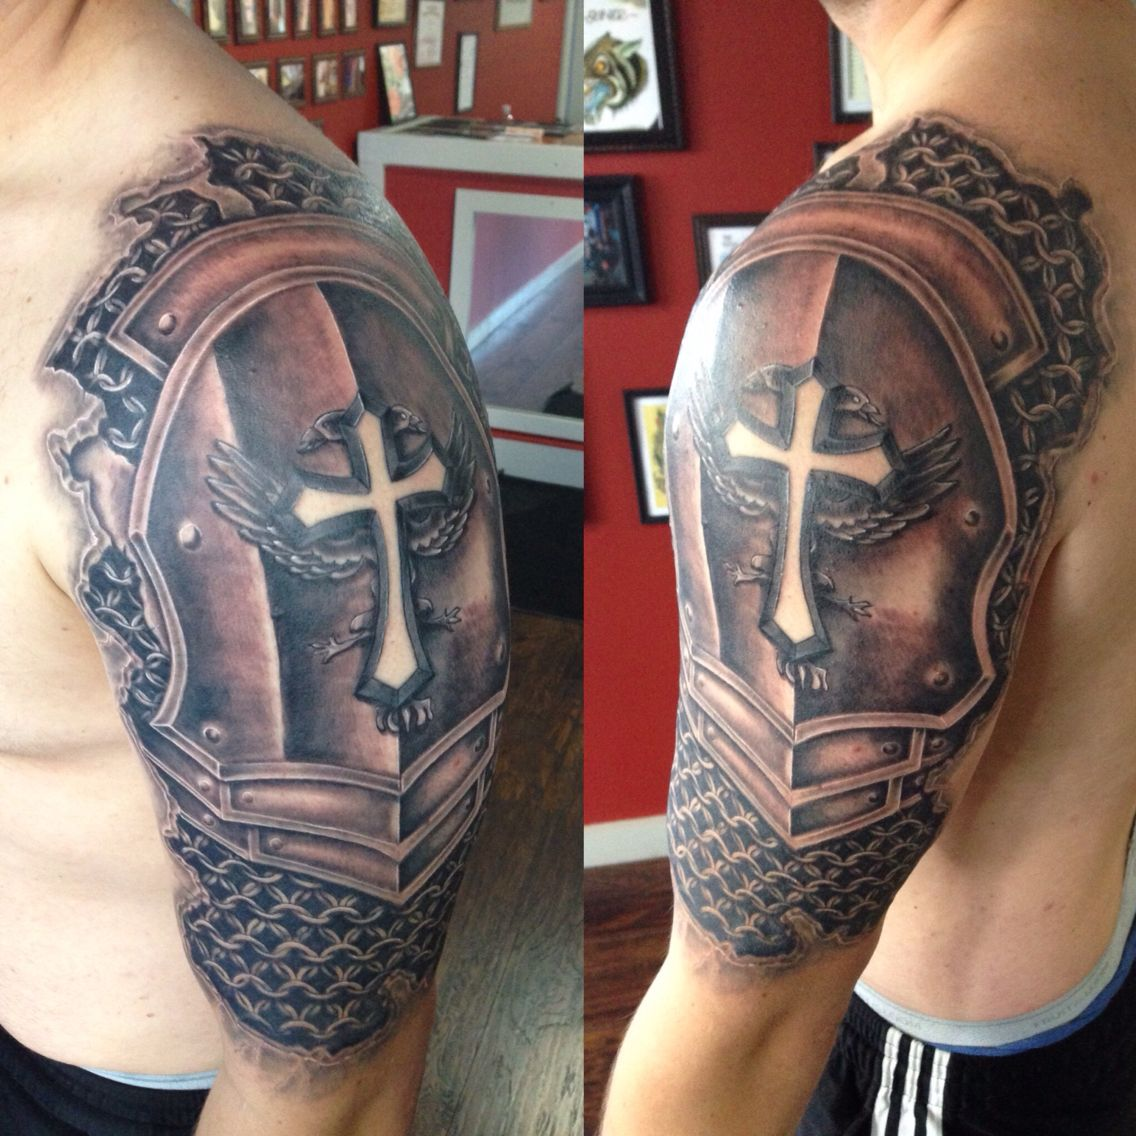 Armor sleeve coverup tattoo by Joshua Nordstrom in